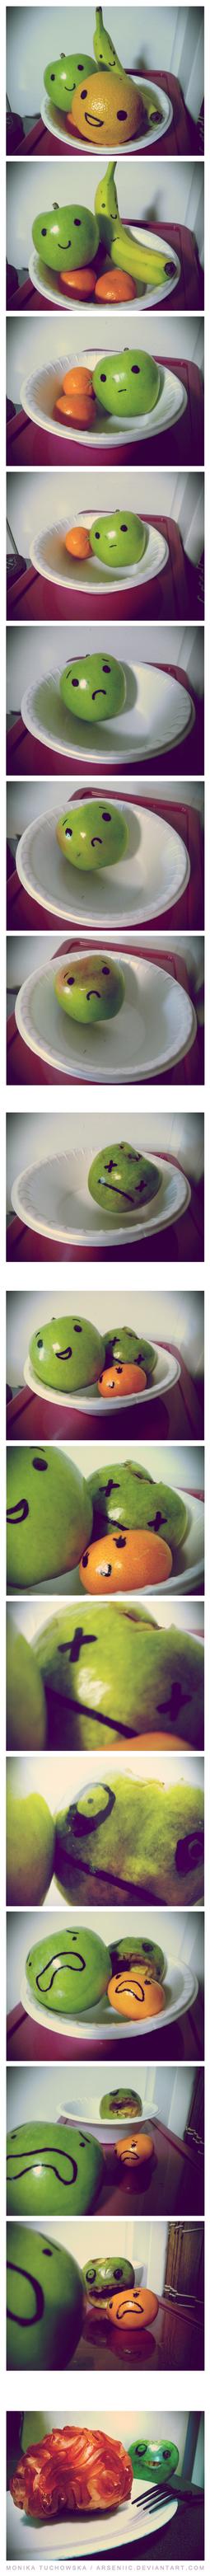 A fruit story. by arseniic